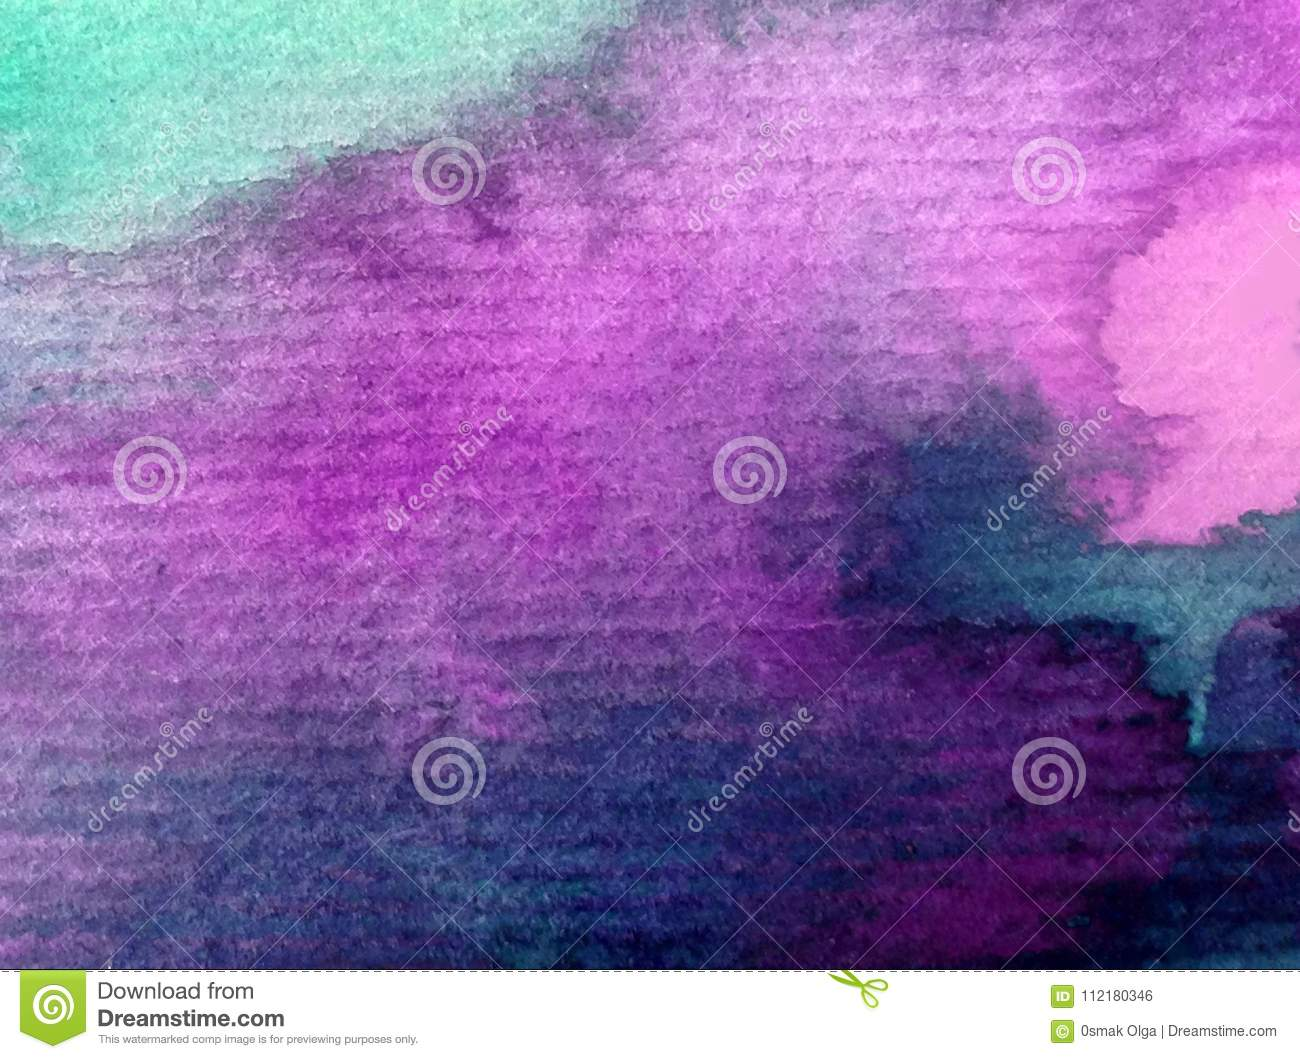 Watercolor art background abstract sky sunrise sunset textured wet wash blurred fantasy